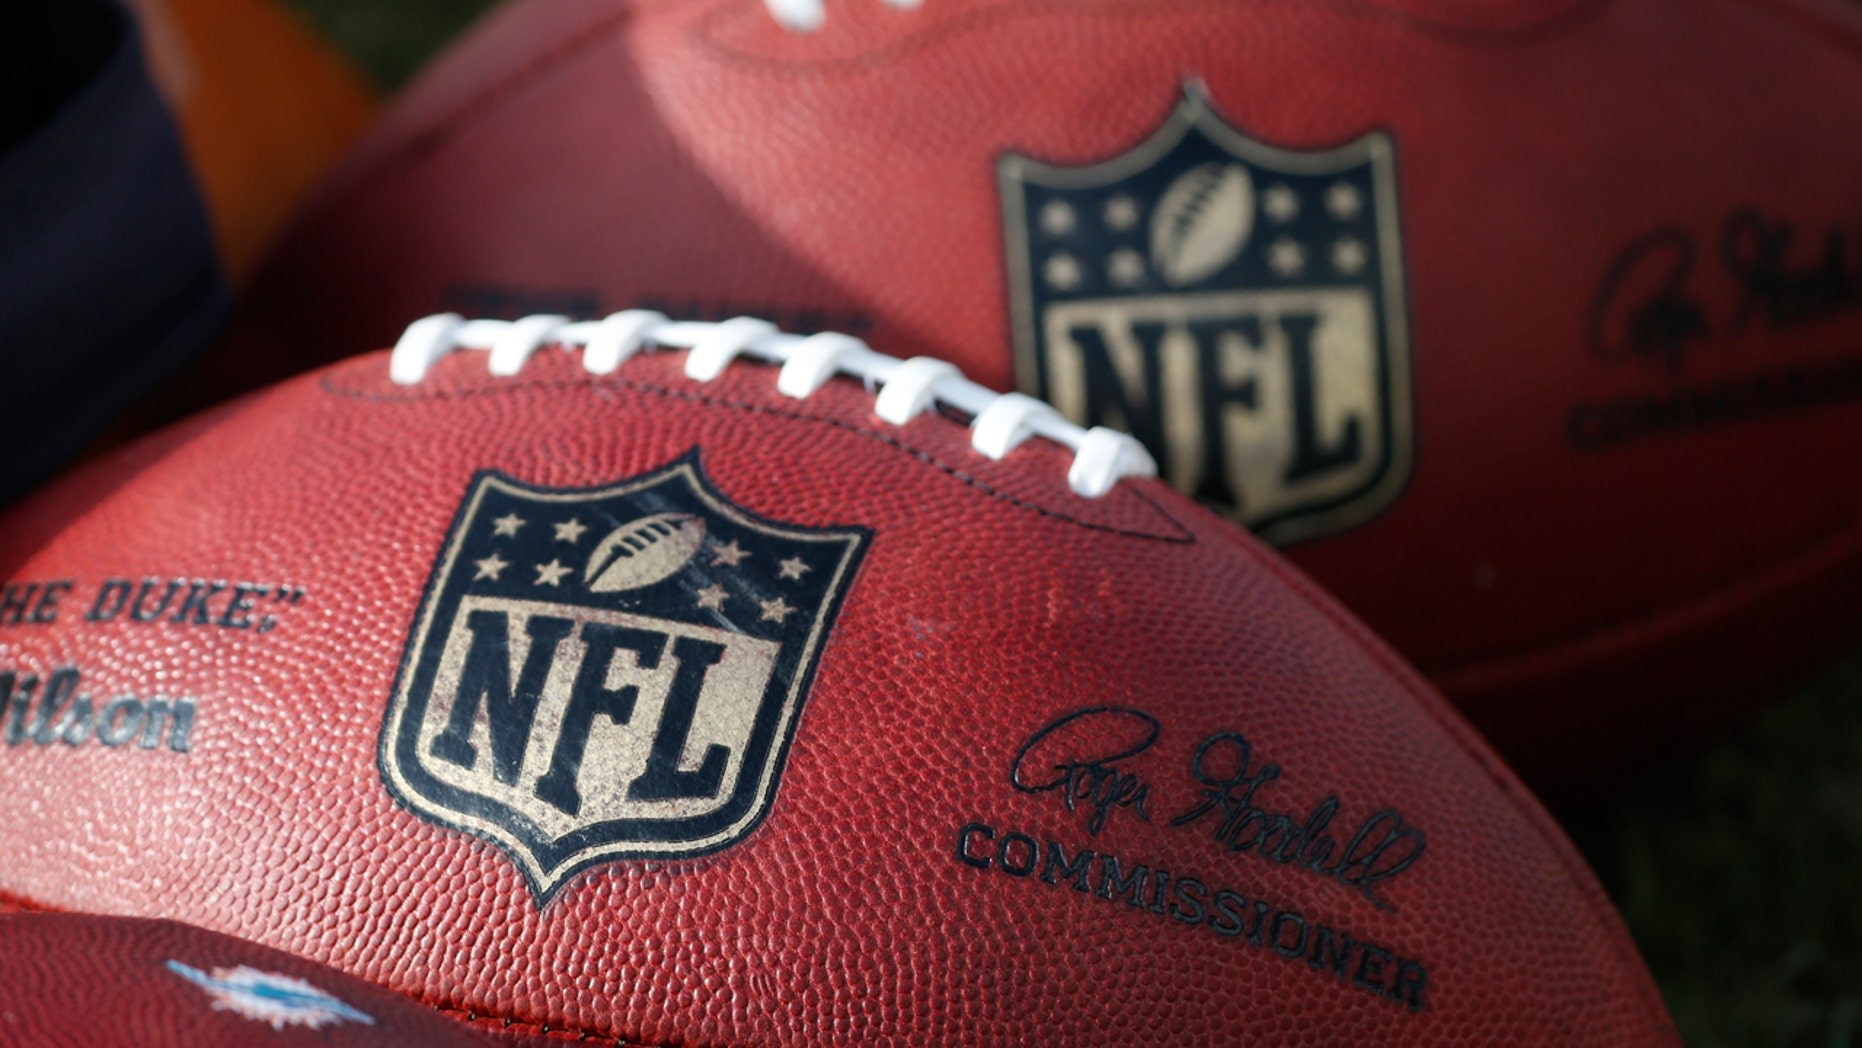 The National Football League released data on January 26 that showed an increase in concussions from 2016 to 2017.